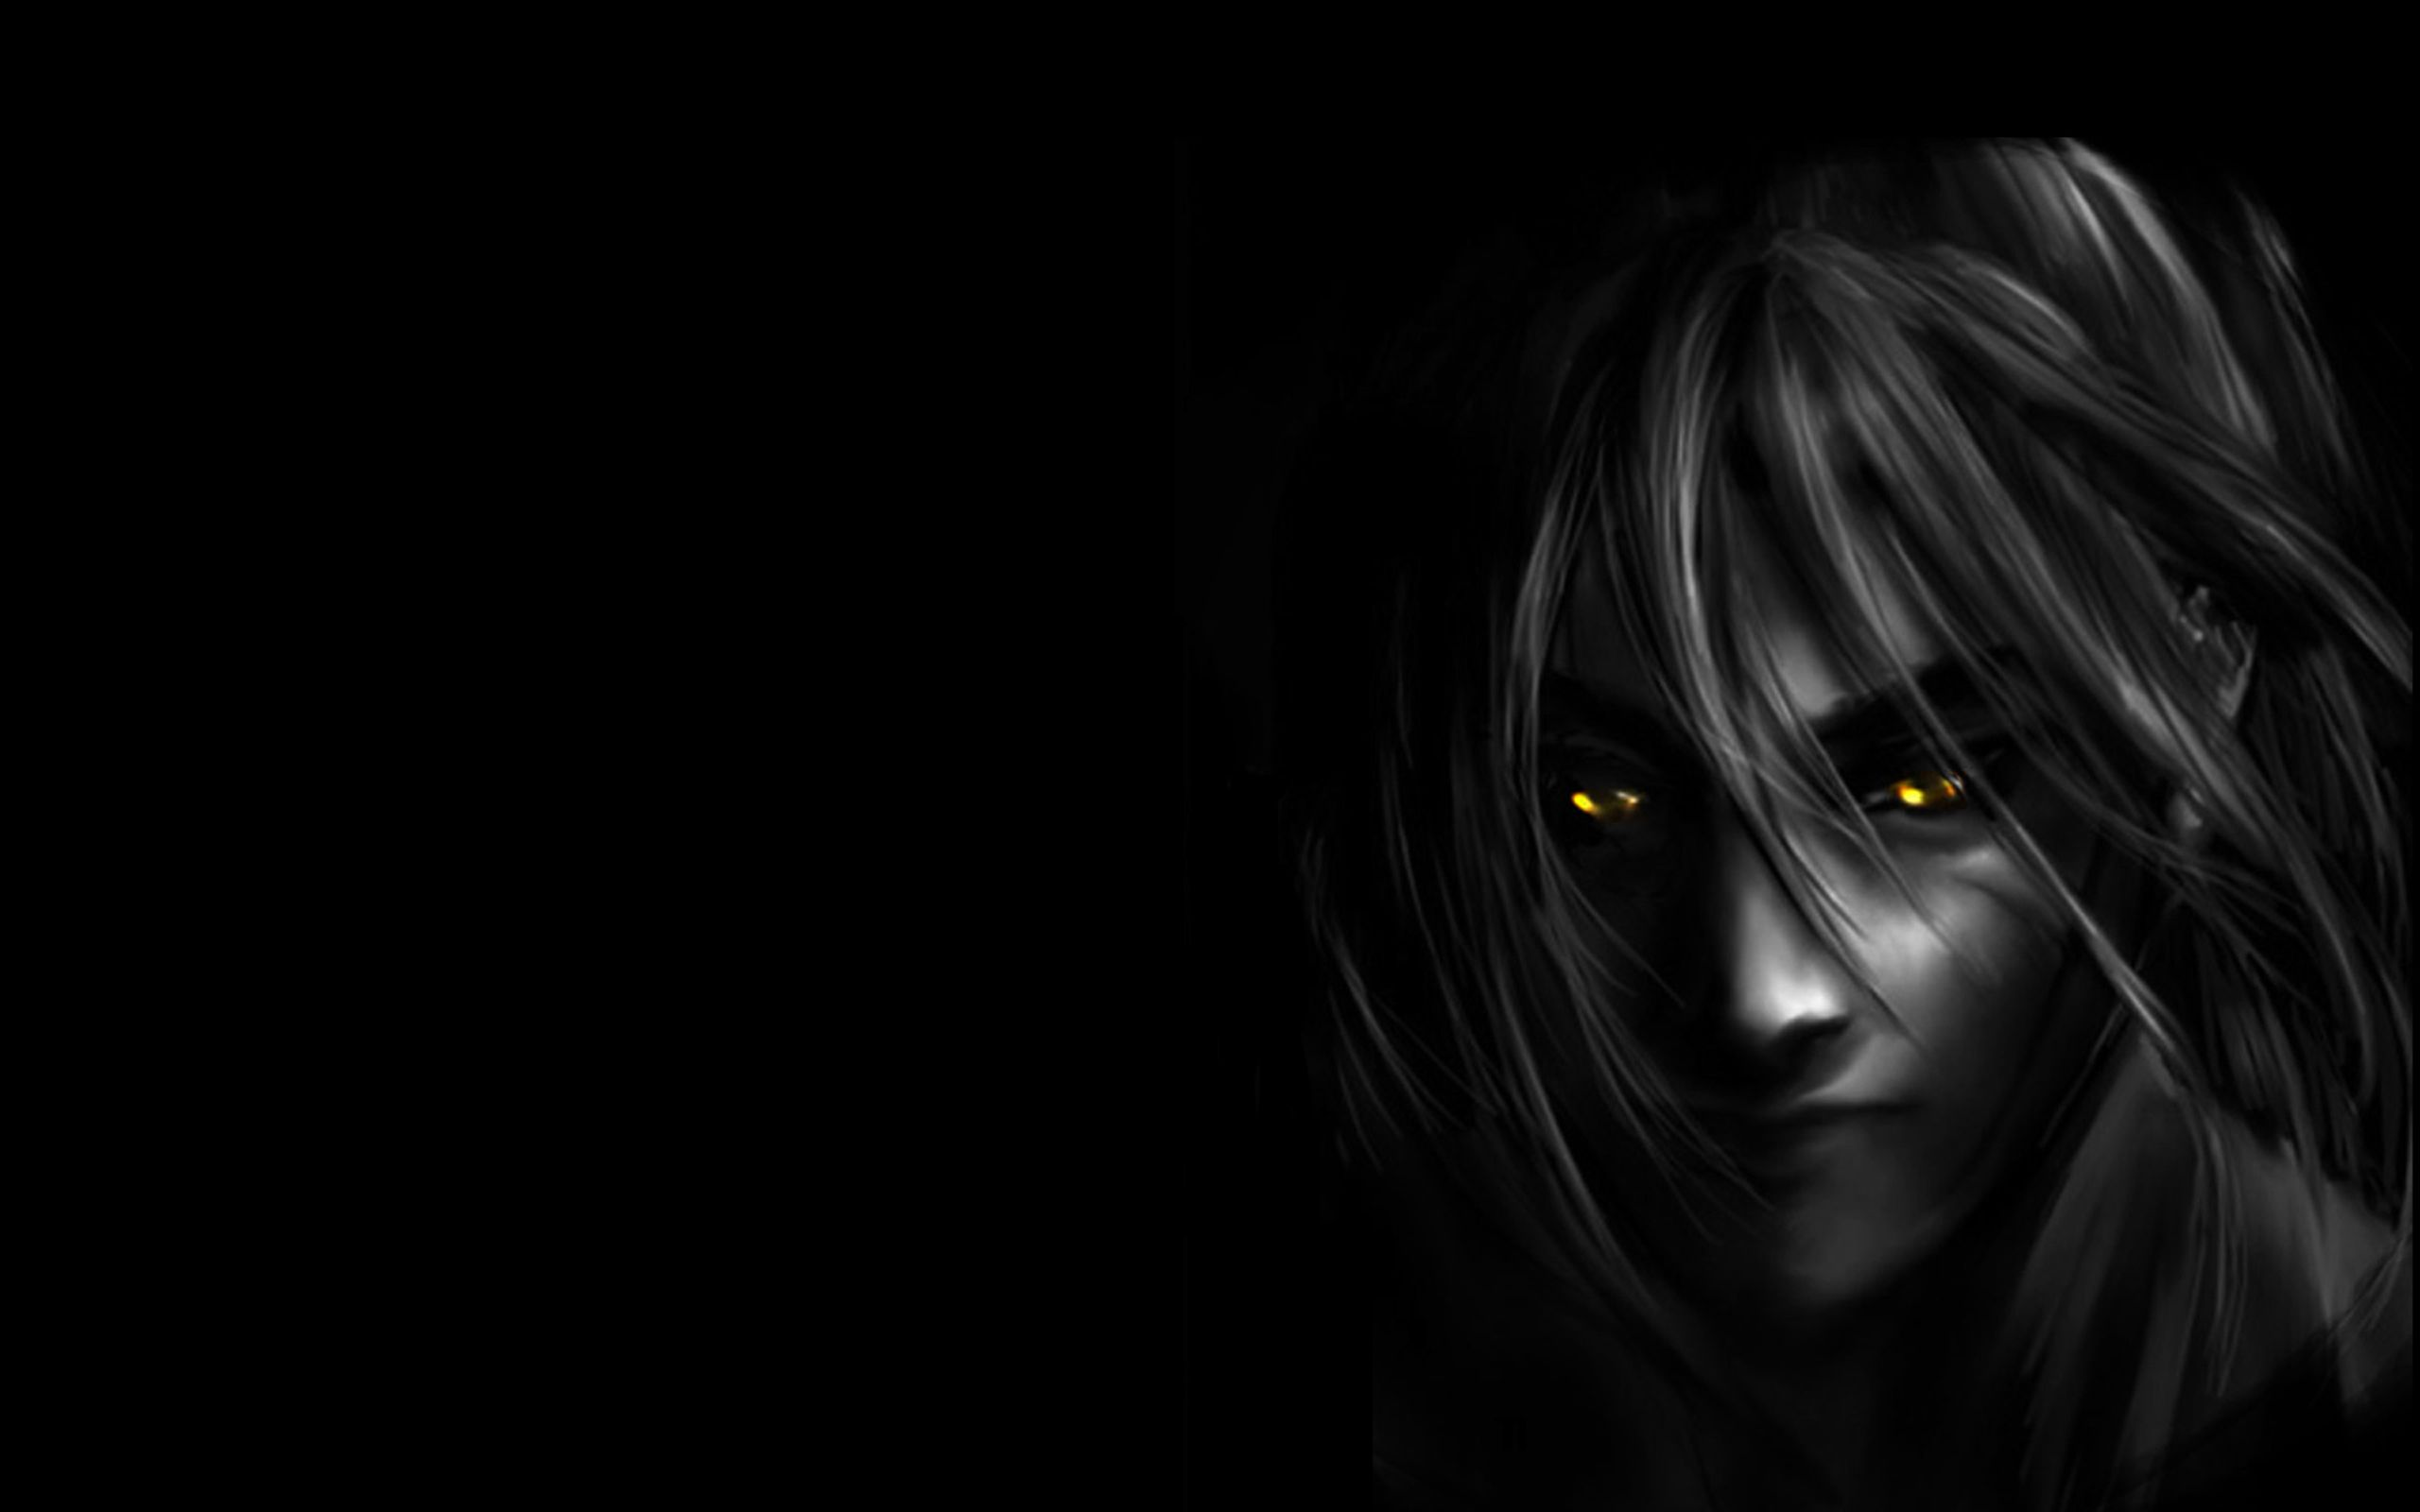 Dark anime wallpaper widescreen hd widescreen 11 hd - Dark anime background ...